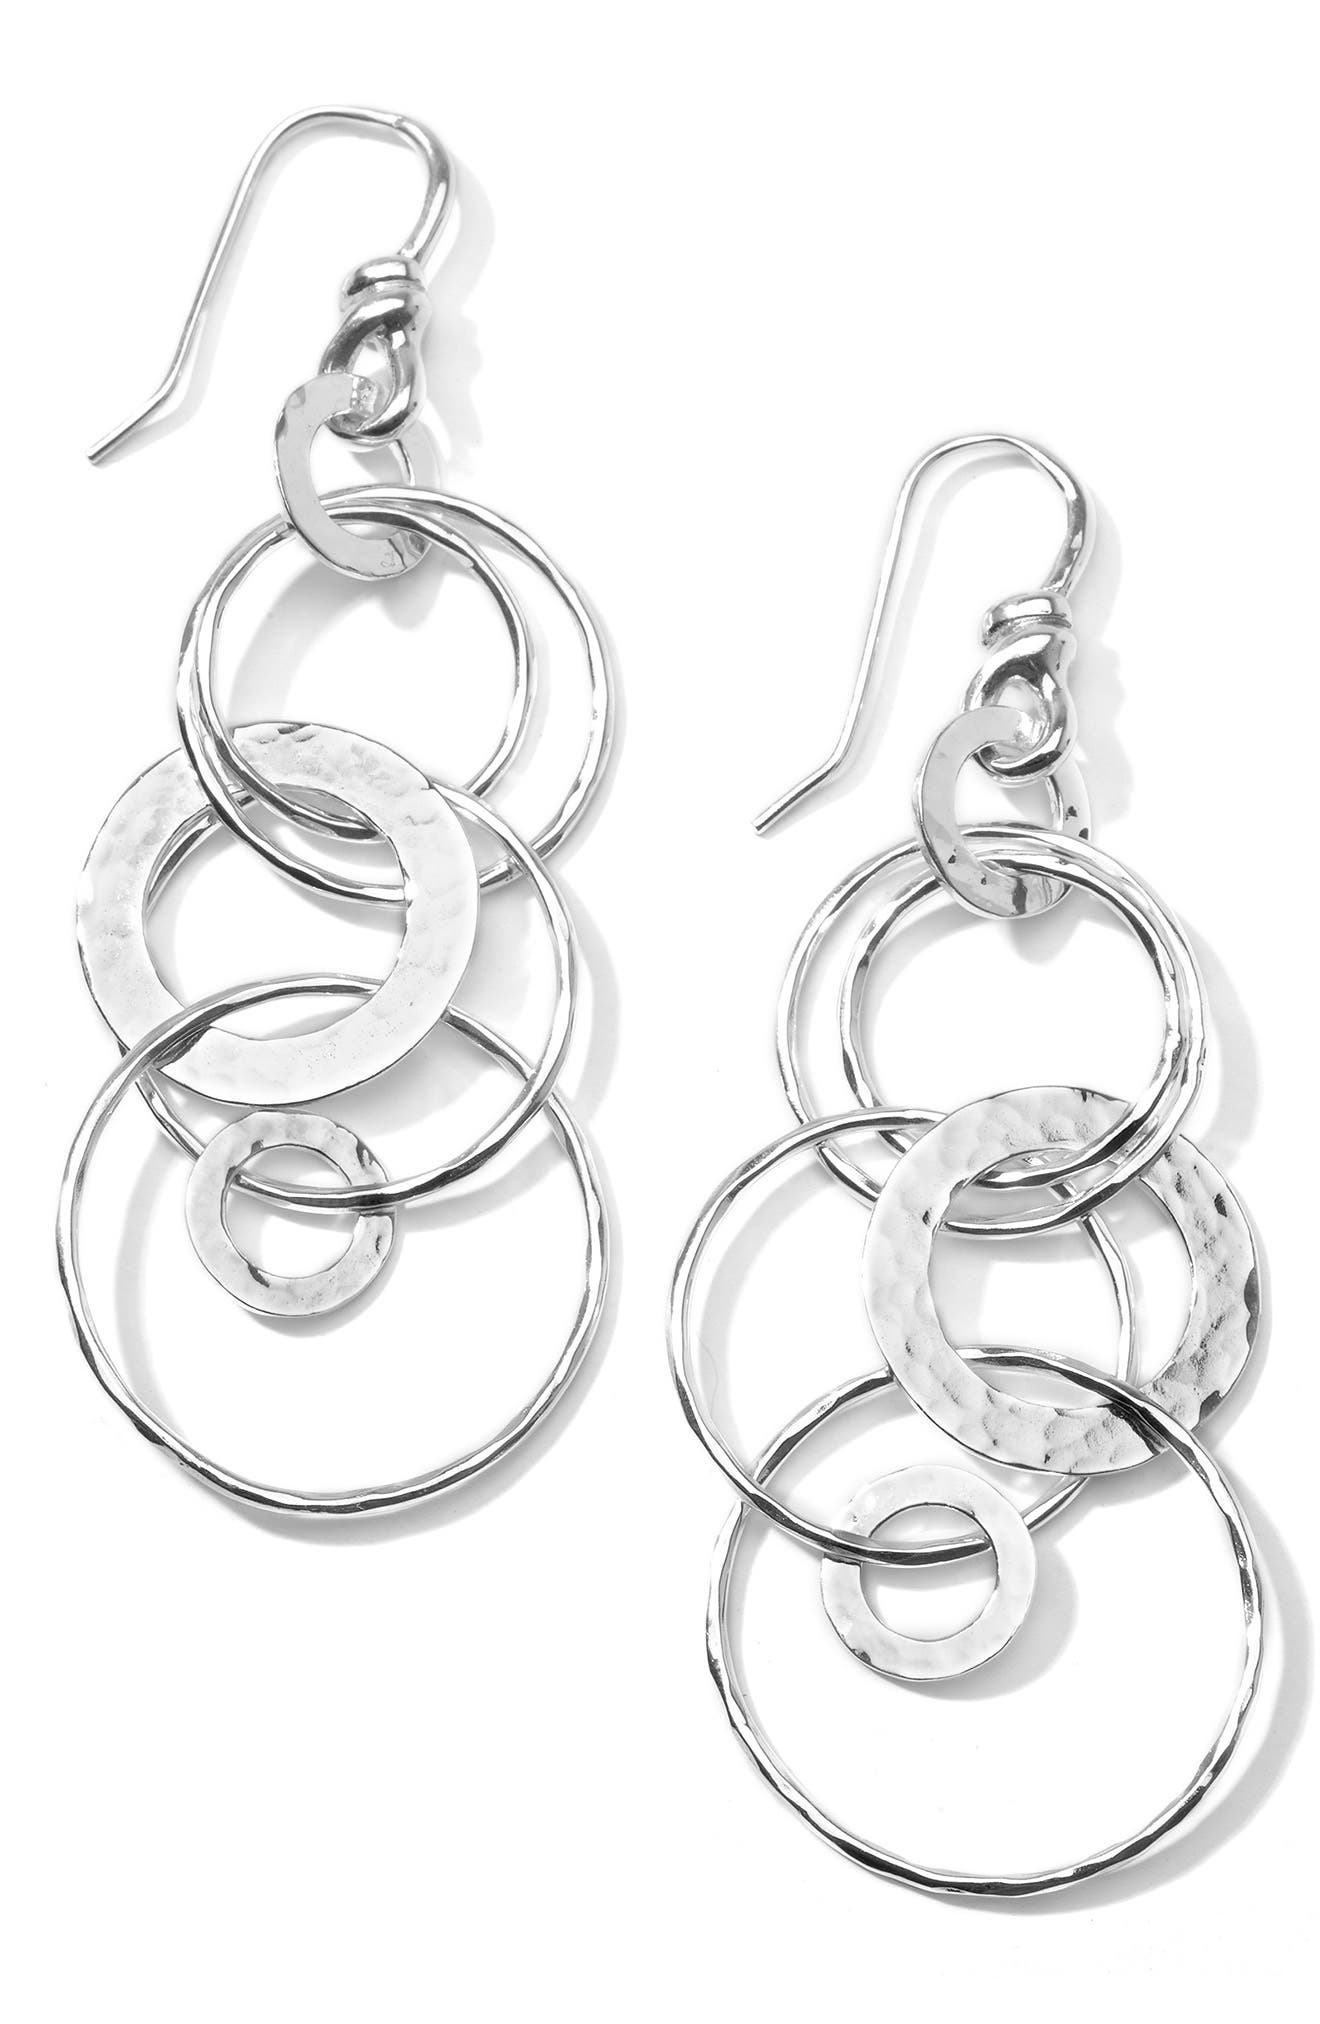 'Jet Set' Drop Earrings,                             Main thumbnail 1, color,                             Sterling Silver